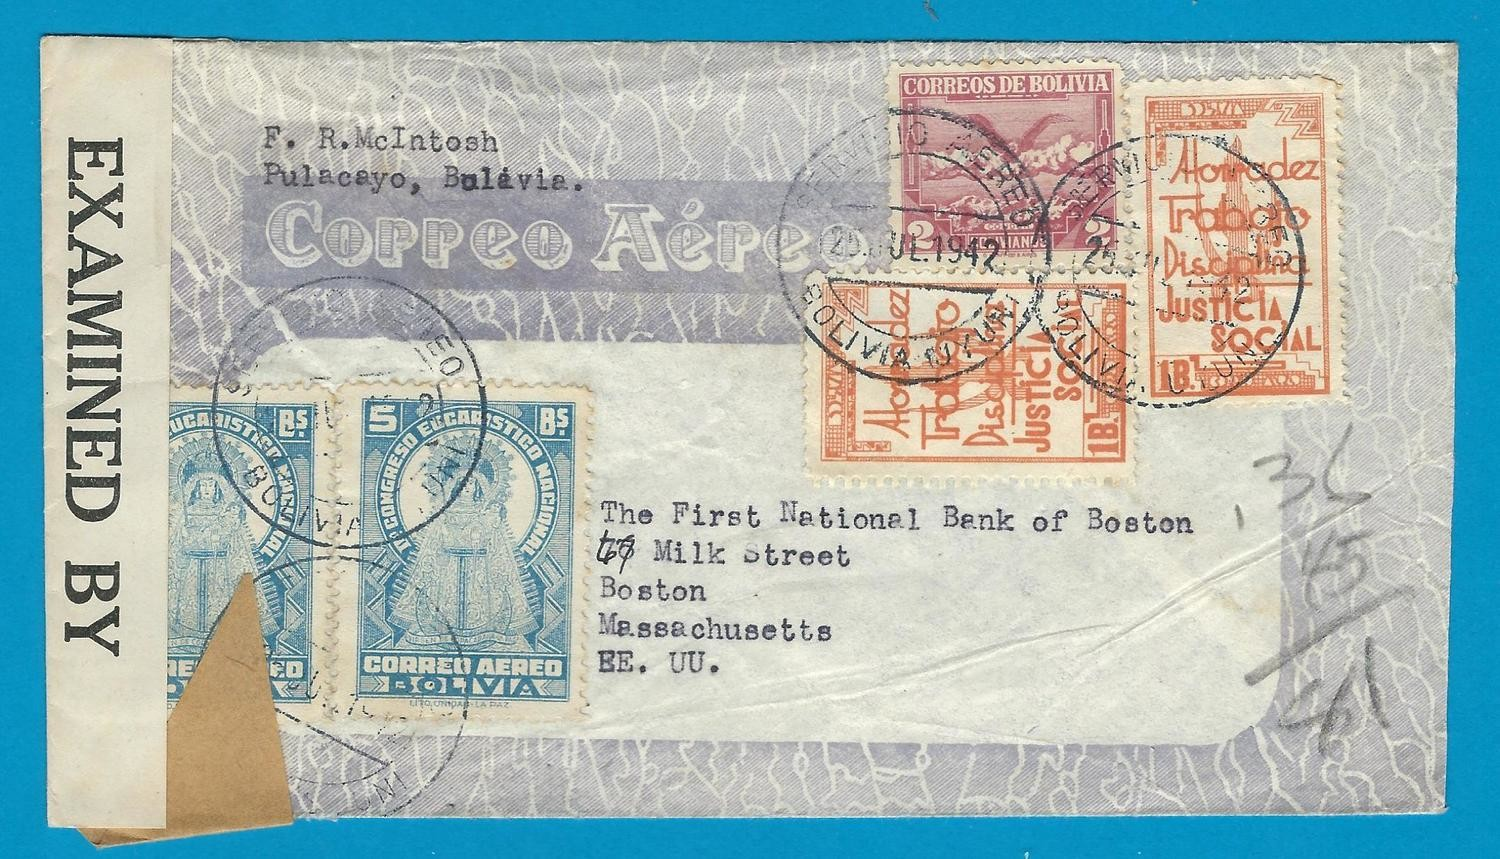 BOLIVIA censor air cover 1942 Uyuni to USA